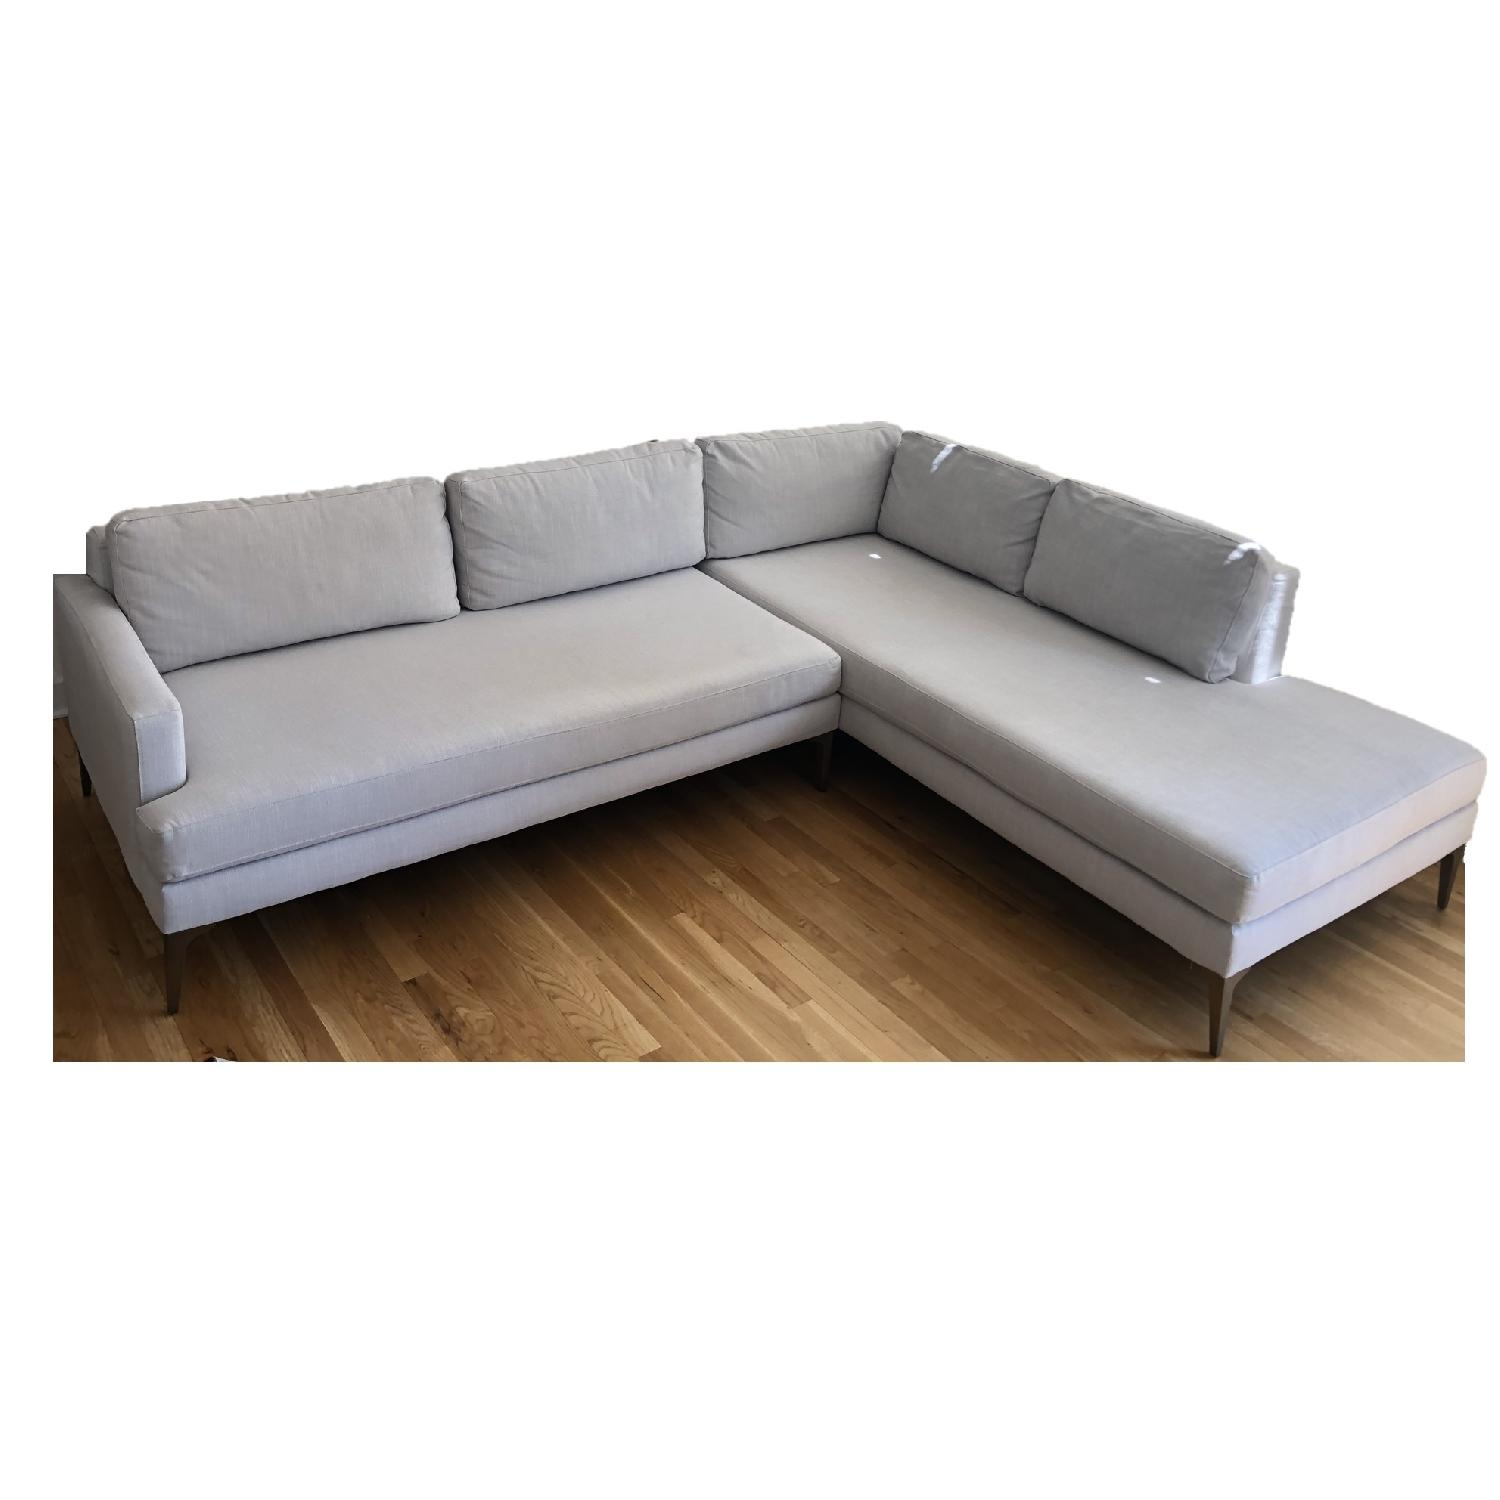 Super West Elm Andes Chaise Sectional Sofa Aptdeco Short Links Chair Design For Home Short Linksinfo